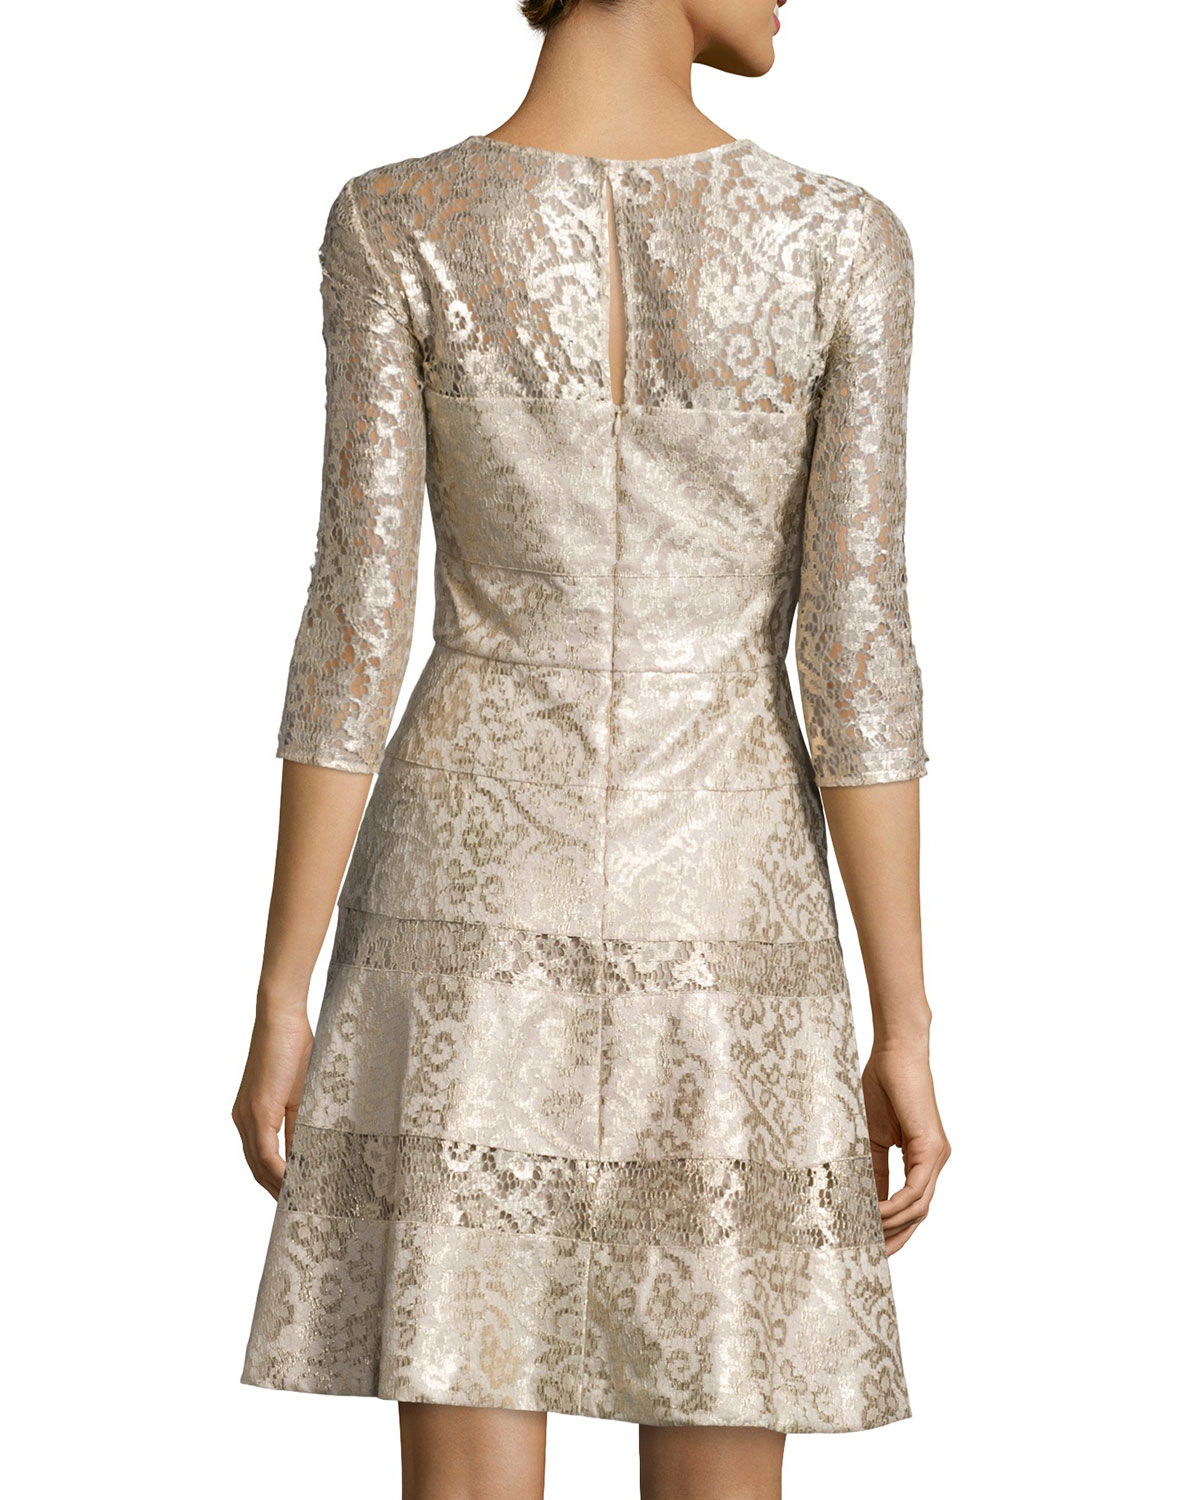 Lyst - Kay Unger 3/4-sleeve Lace Fit & Flare Dress in Metallic